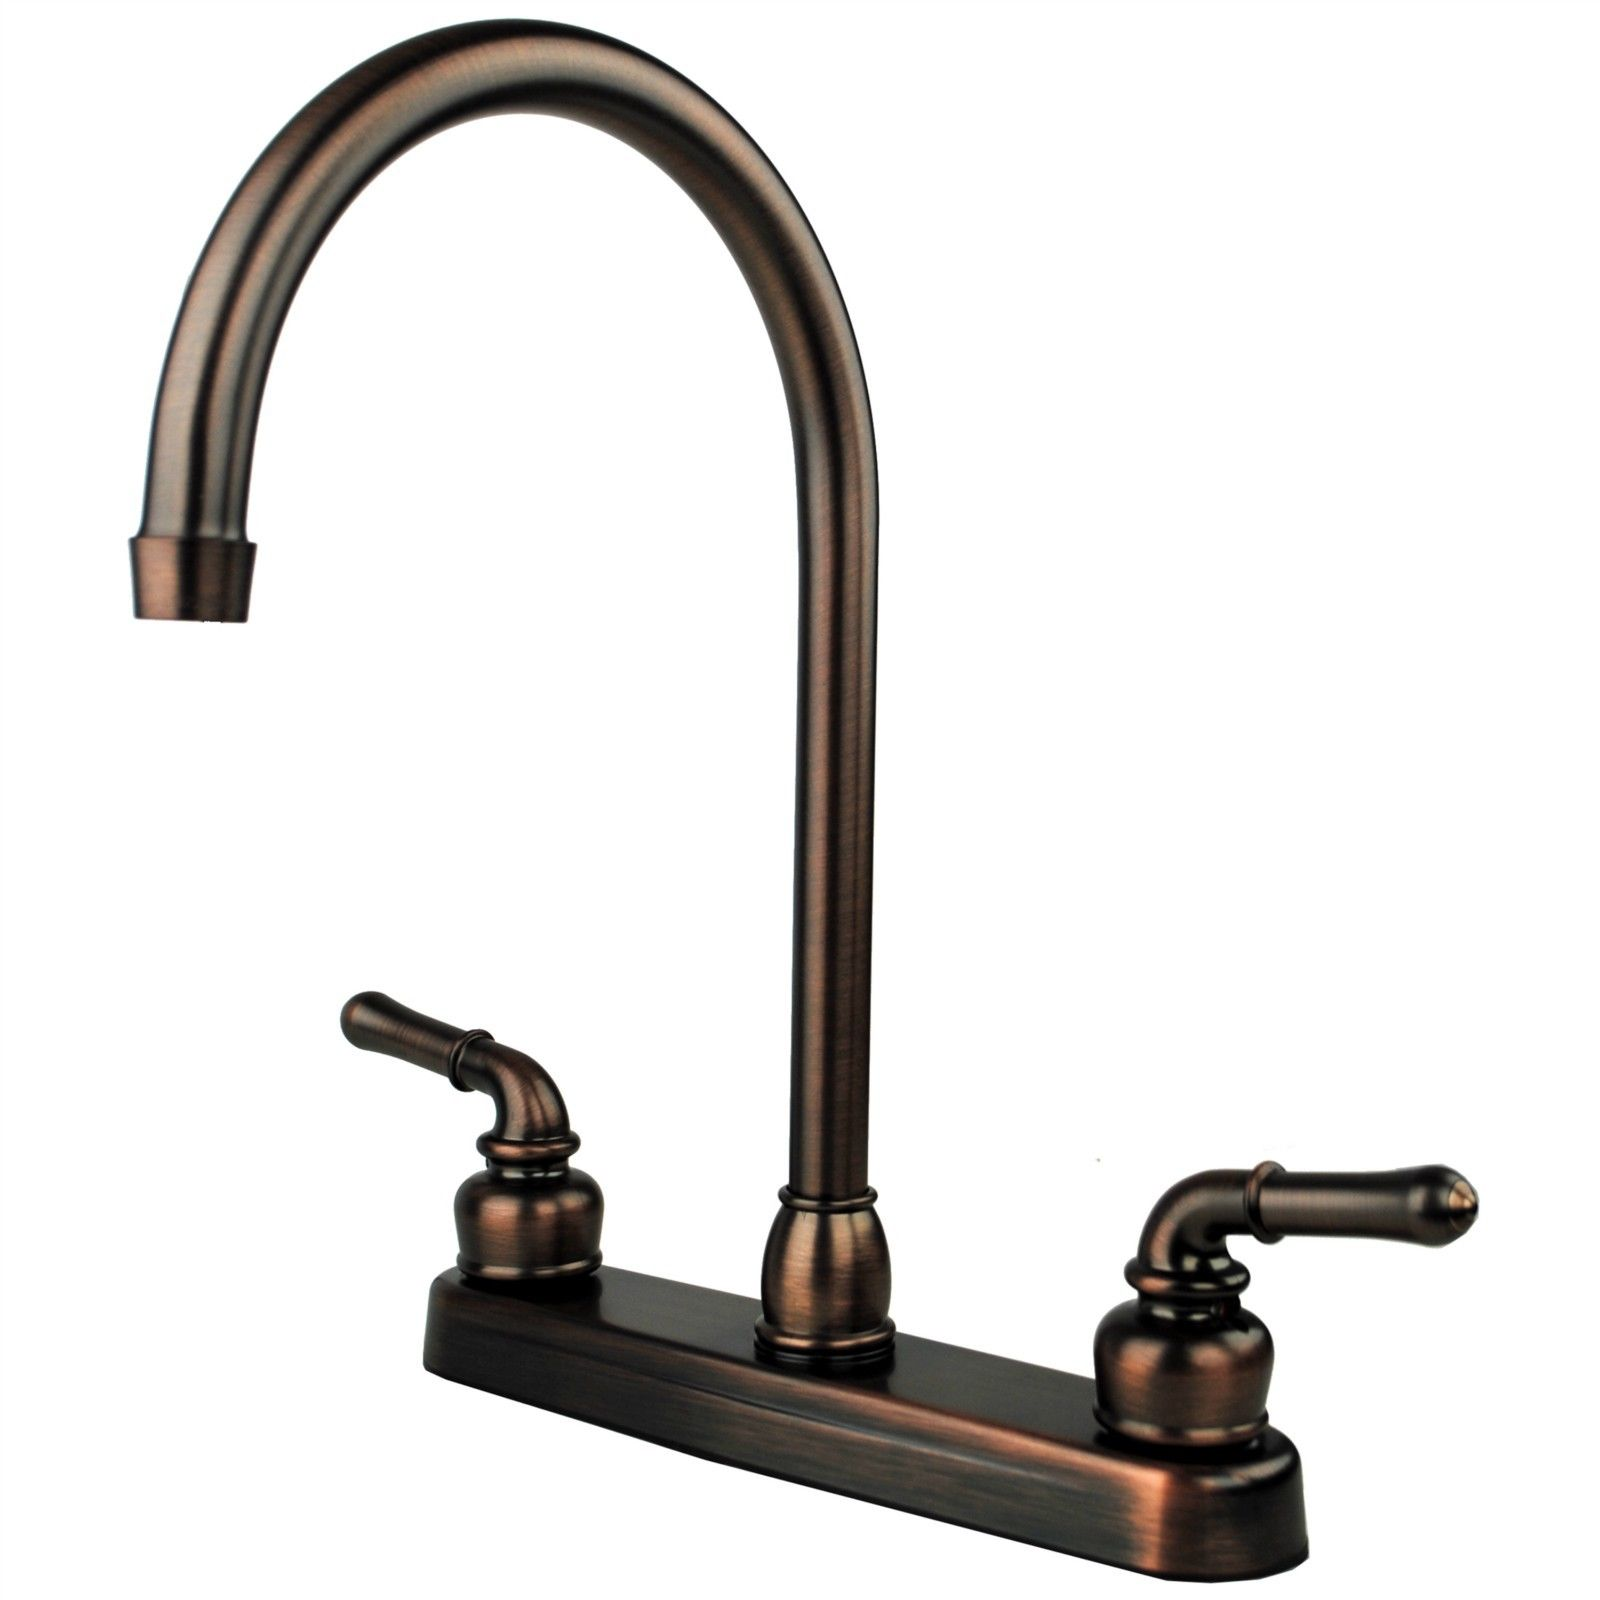 Rv Mobile Home Kitchen Sink Faucet 14 5 Spout Oil Rubbed Bronze